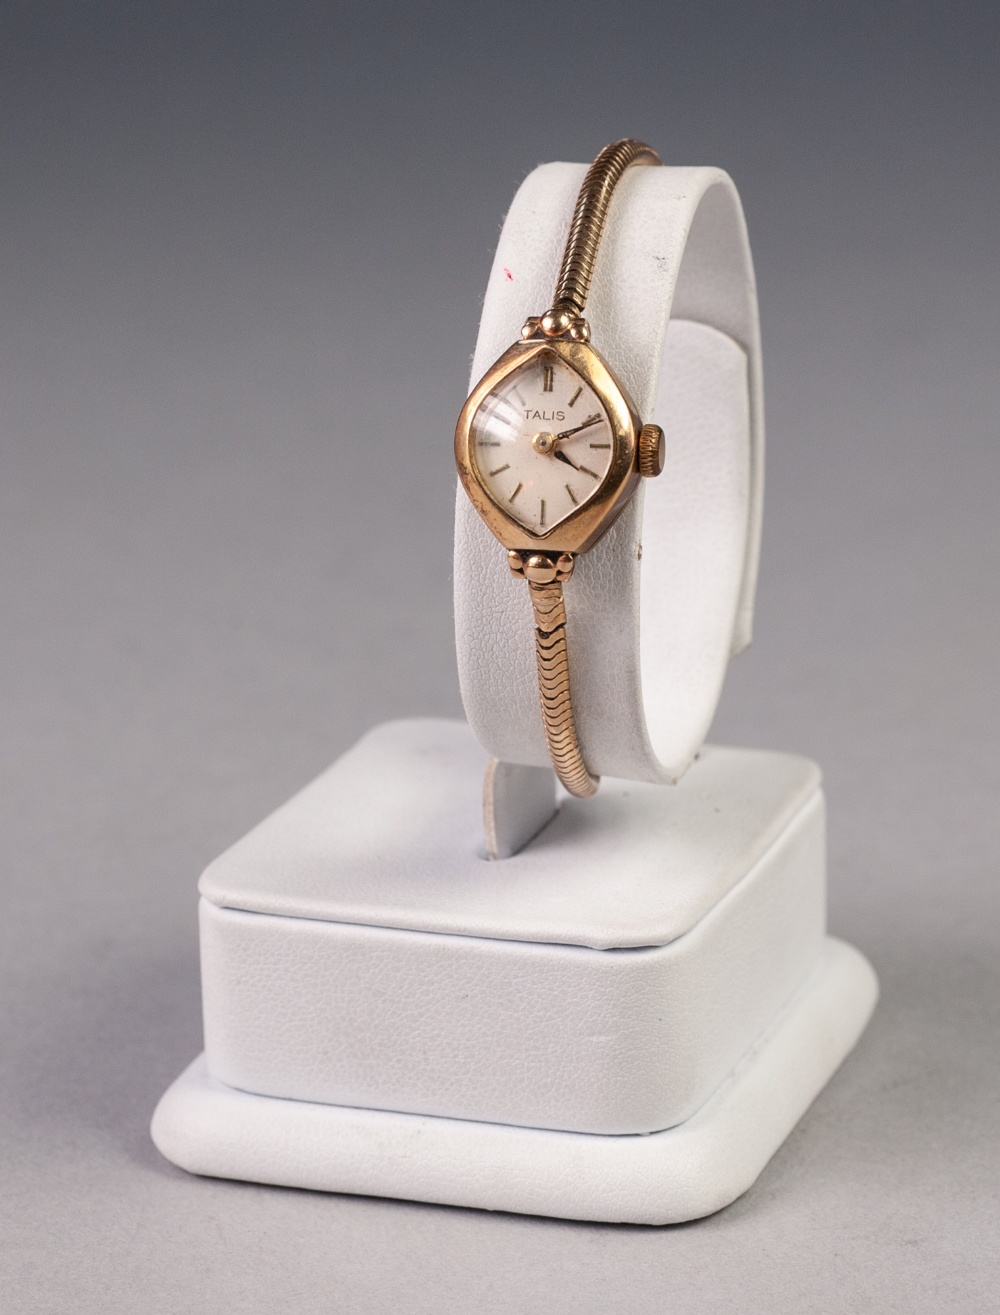 Lot 18 - LADY'S 'TALIS' 9ct GOLD WRIST WATCH, with mechanical movement, lozenge shaped silver dial with